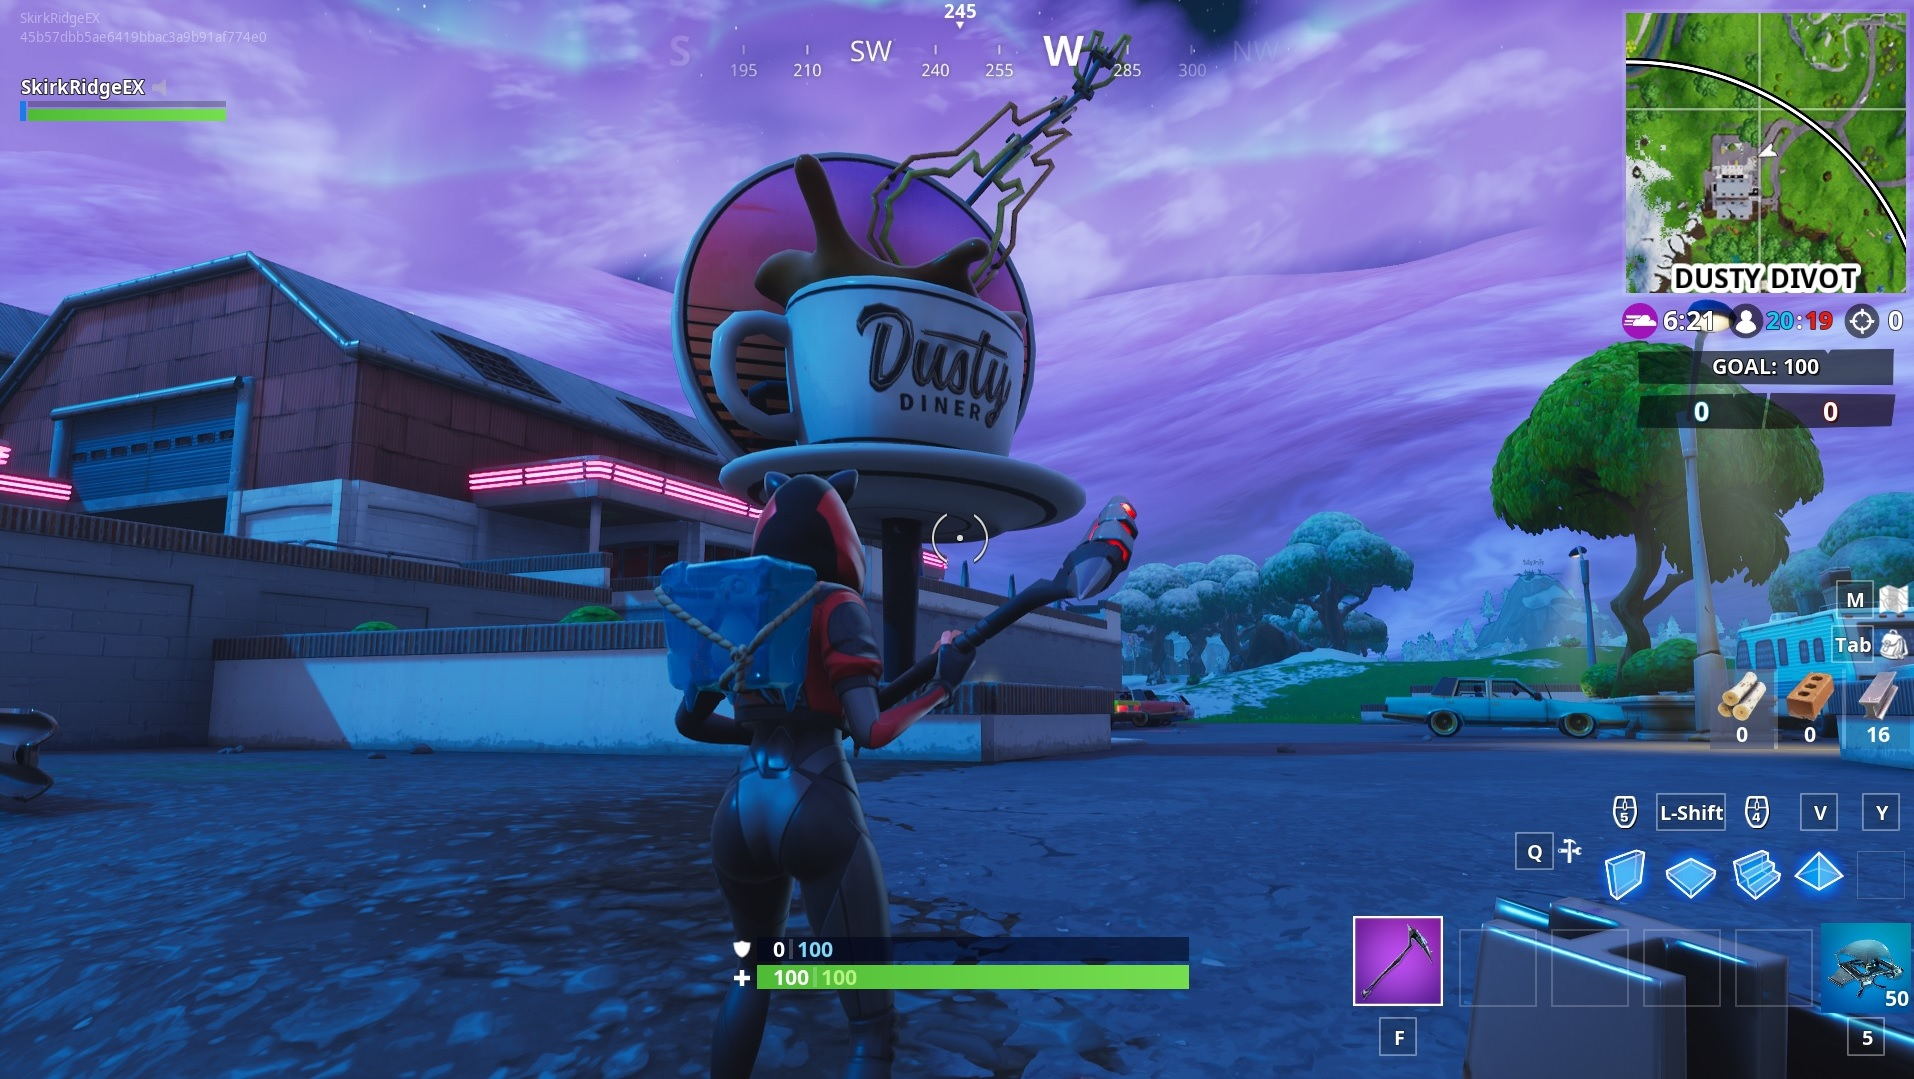 an oversized coffee cup near dusty divot - places to dance in fortnite